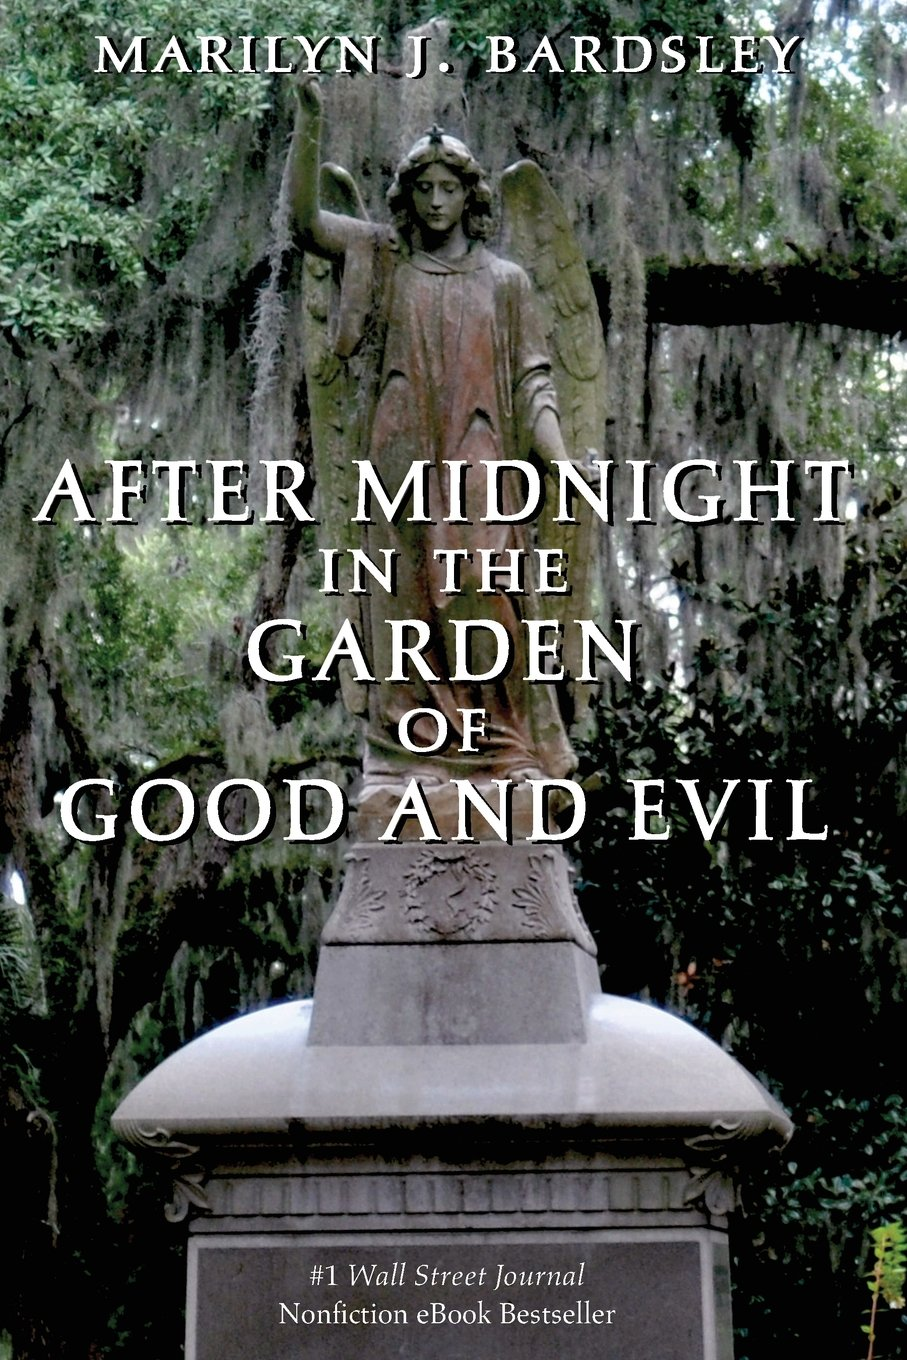 after midnight in the garden of good and evil marilyn j bardsley 9780795333453 amazoncom books - Midnight In The Garden Of Good And Evil Statue